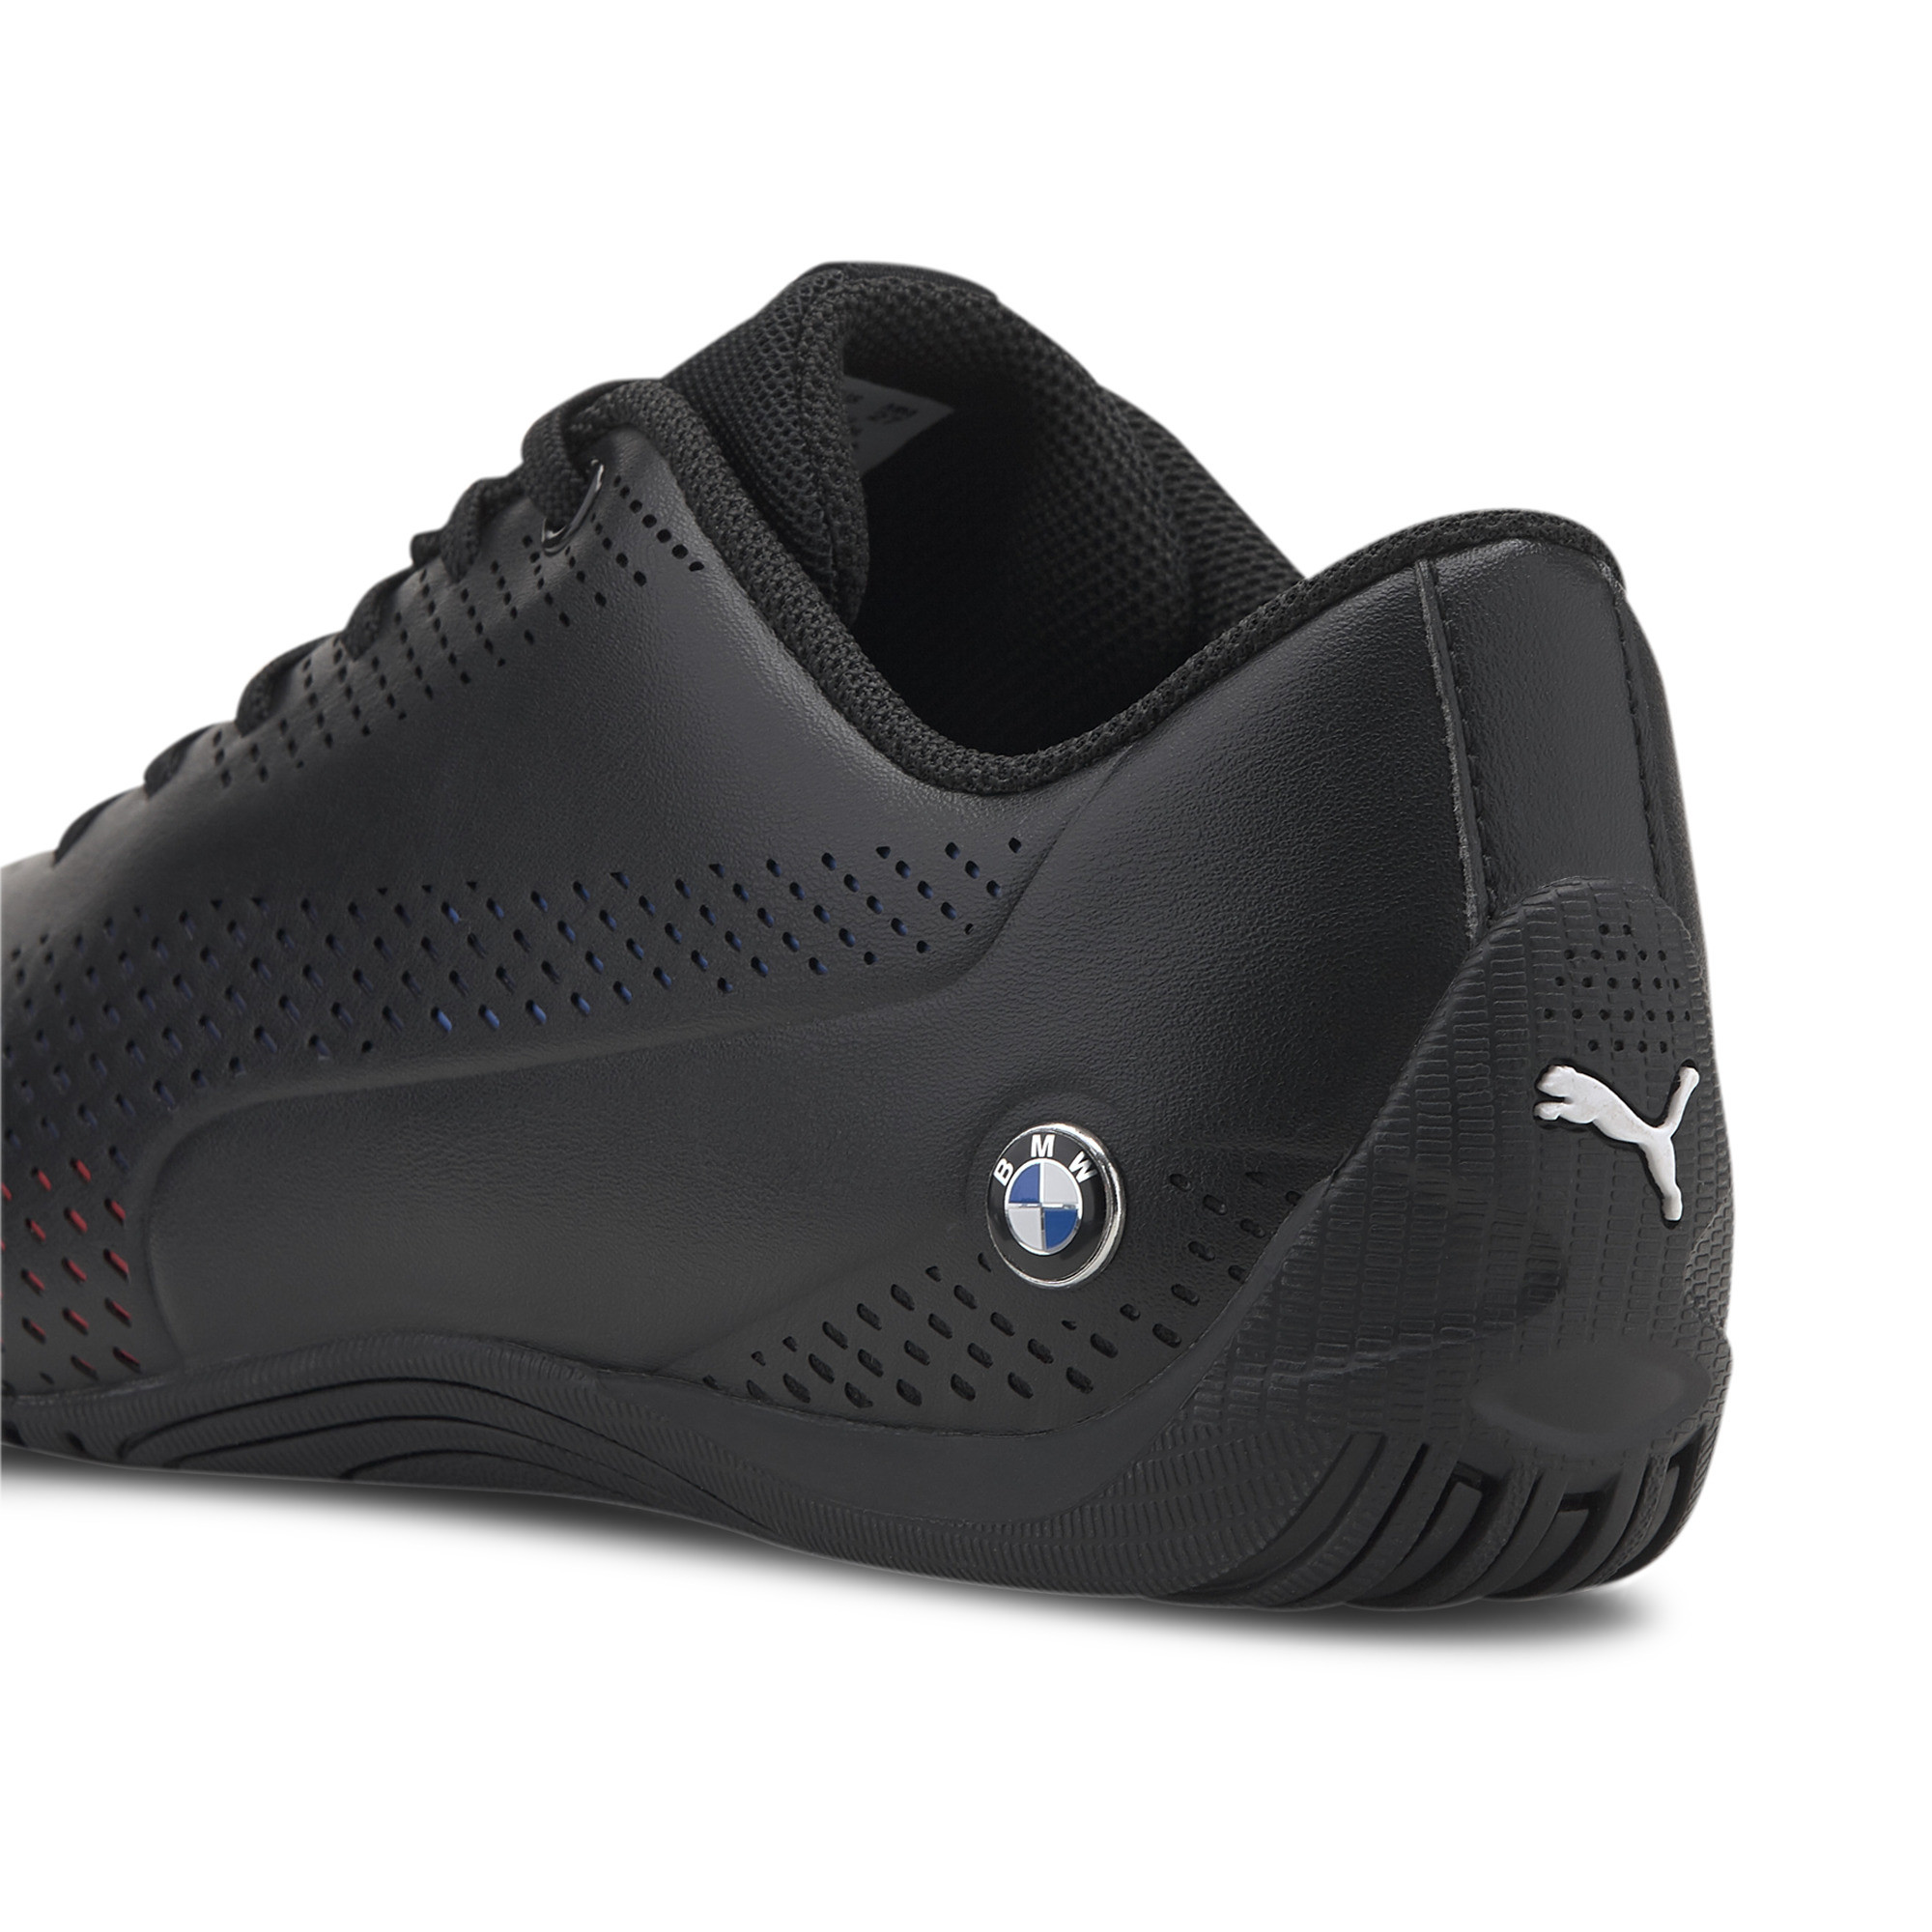 PUMA-Men-039-s-BMW-M-Motorsport-Drift-Cat-5-Ultra-Motorsport-Shoes thumbnail 17